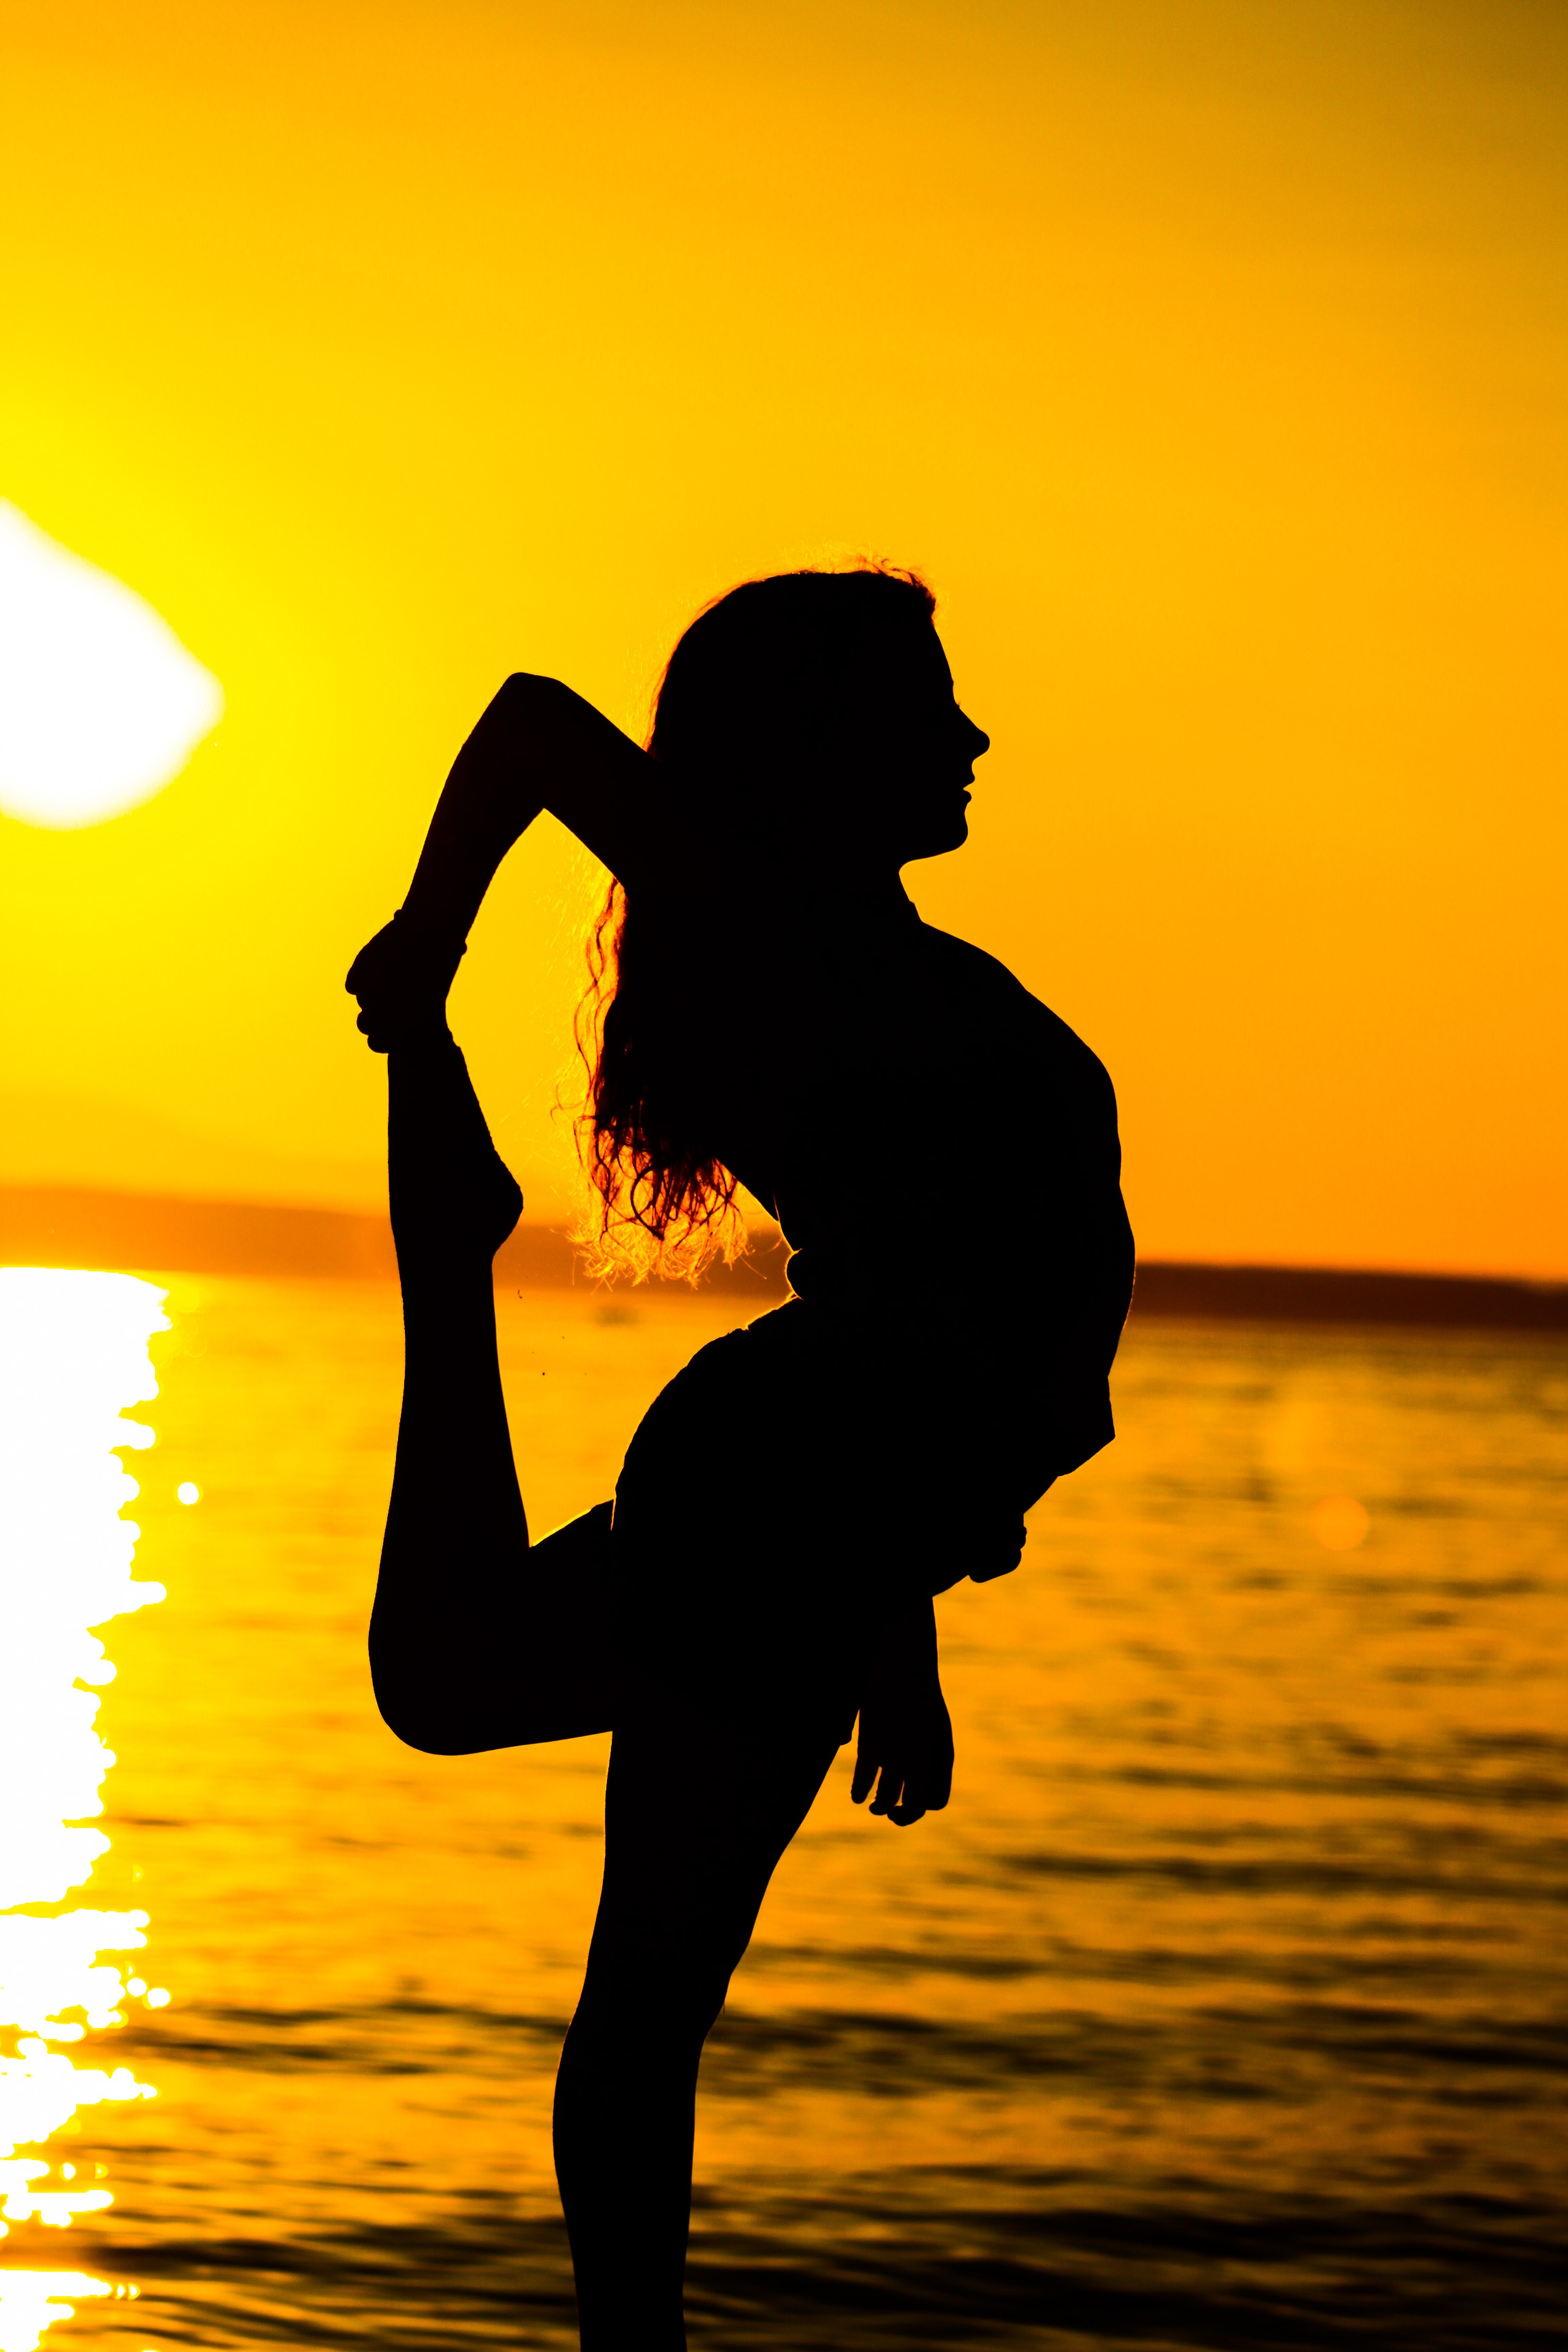 Girl Silhouette Wallpaper Woman Standing On Beach During Sunset 183 Free Stock Photo